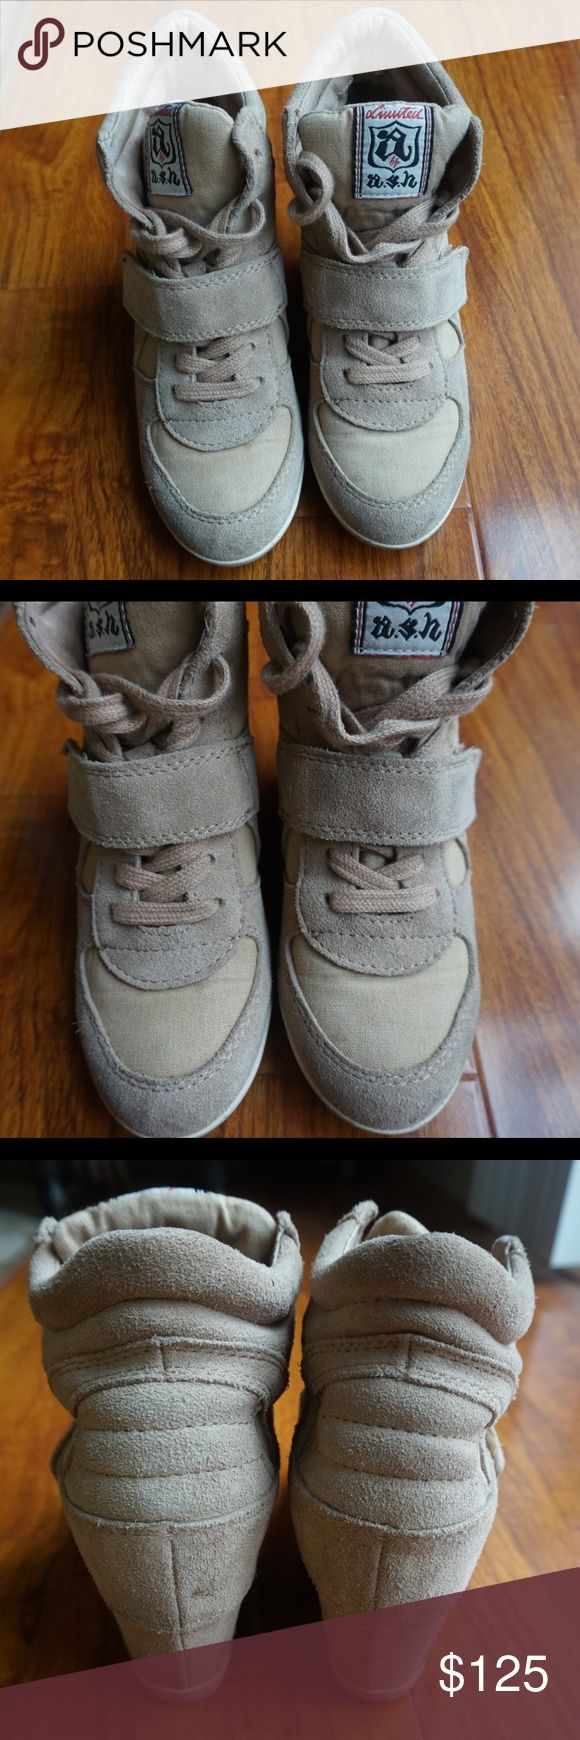 Suede Beige Wedge Sneakers by ASH Good used condition. This one is from a Limited Collection by Ash. Super cute! Comes from a pet and smoke free home. Please use offer button to make an offer. Thank you for looking. Ash Shoes Sneakers